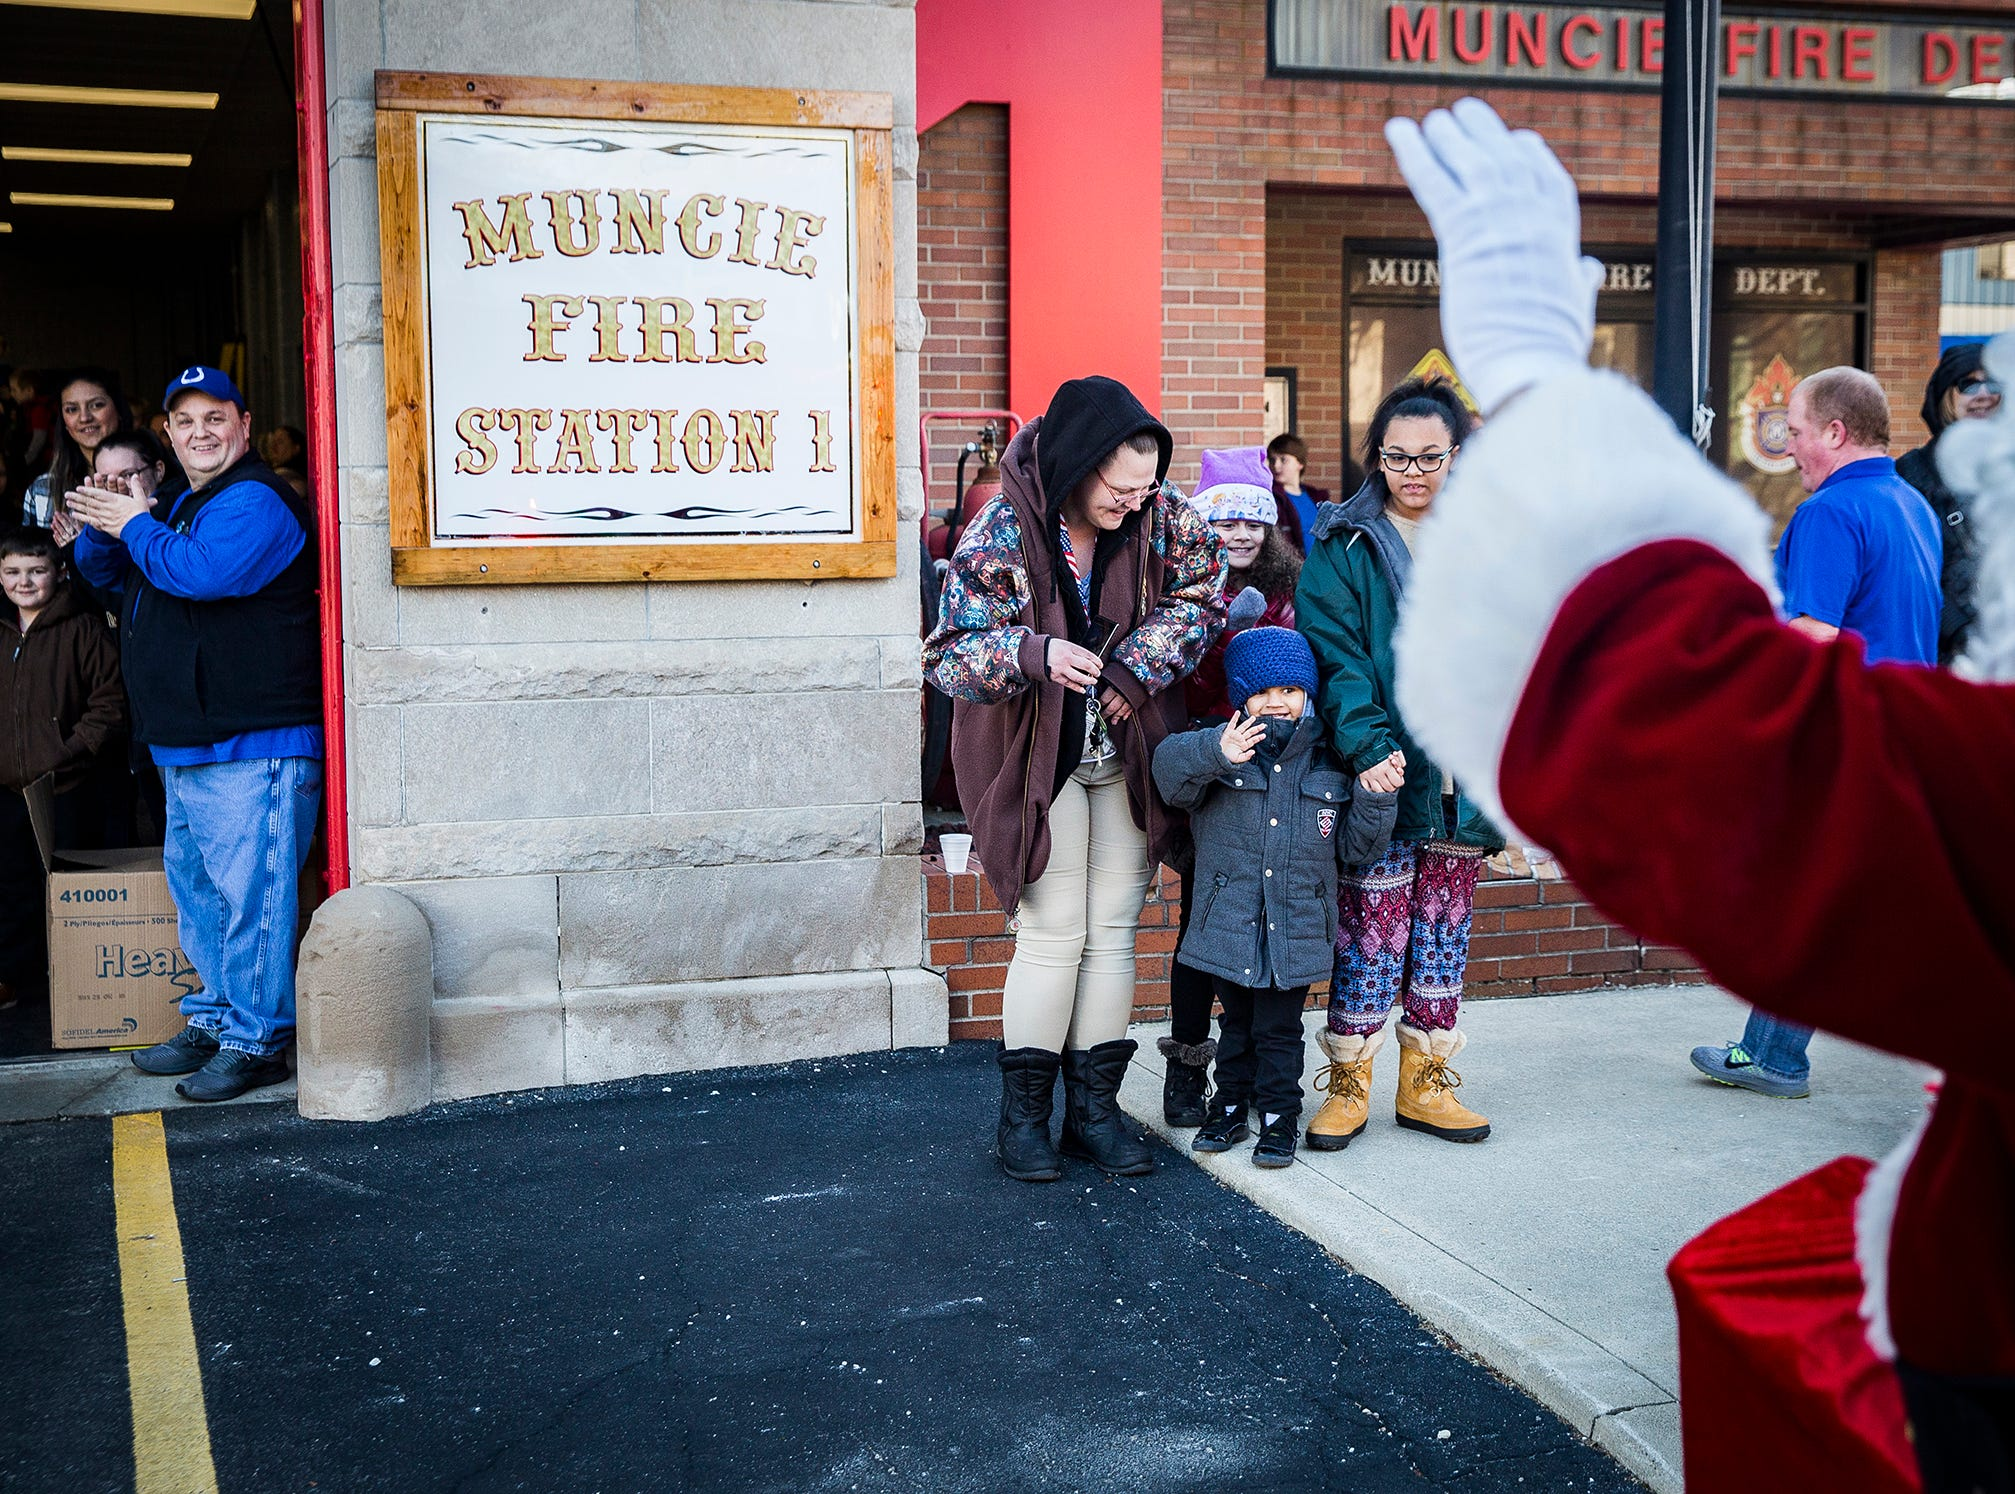 Hundreds of families gathered at Fire Station No.1 in downtown Muncie to meet Santa and receive free gifts Christmas Eve. Firefighters gave away more than sixty bikes during the event.